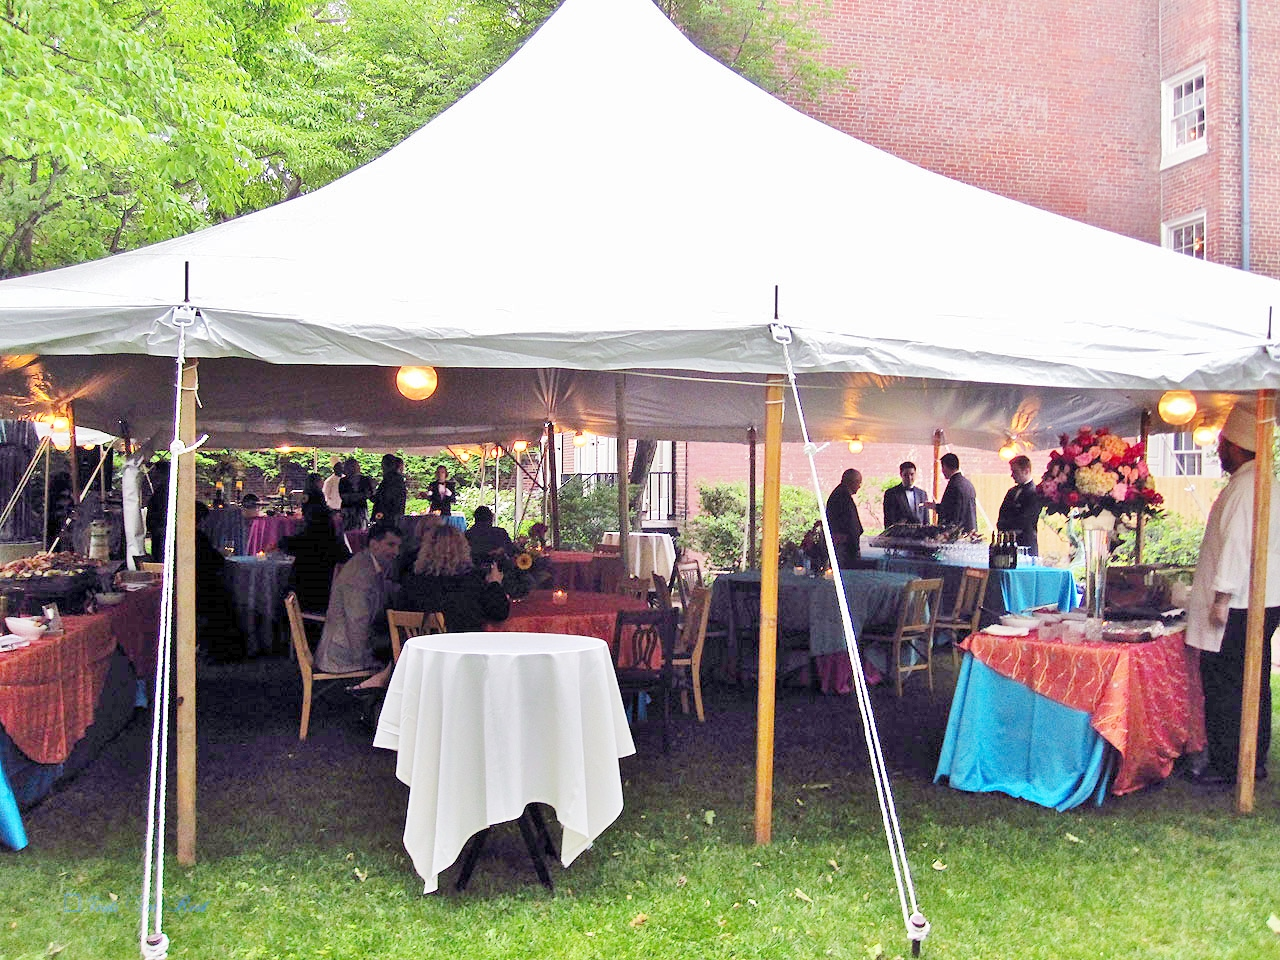 Party tents for rent in Lancaster, PA